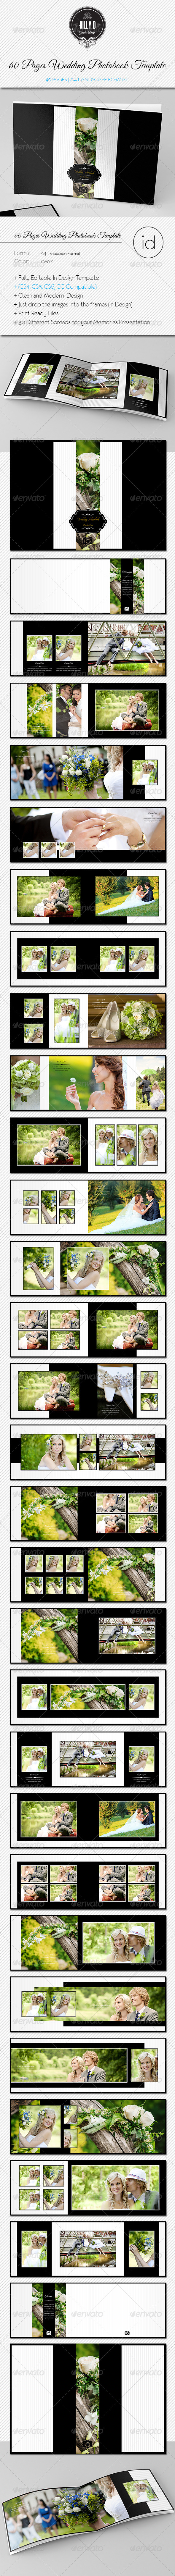 GraphicRiver 60 Pages Wedding Photobook Template 8608624